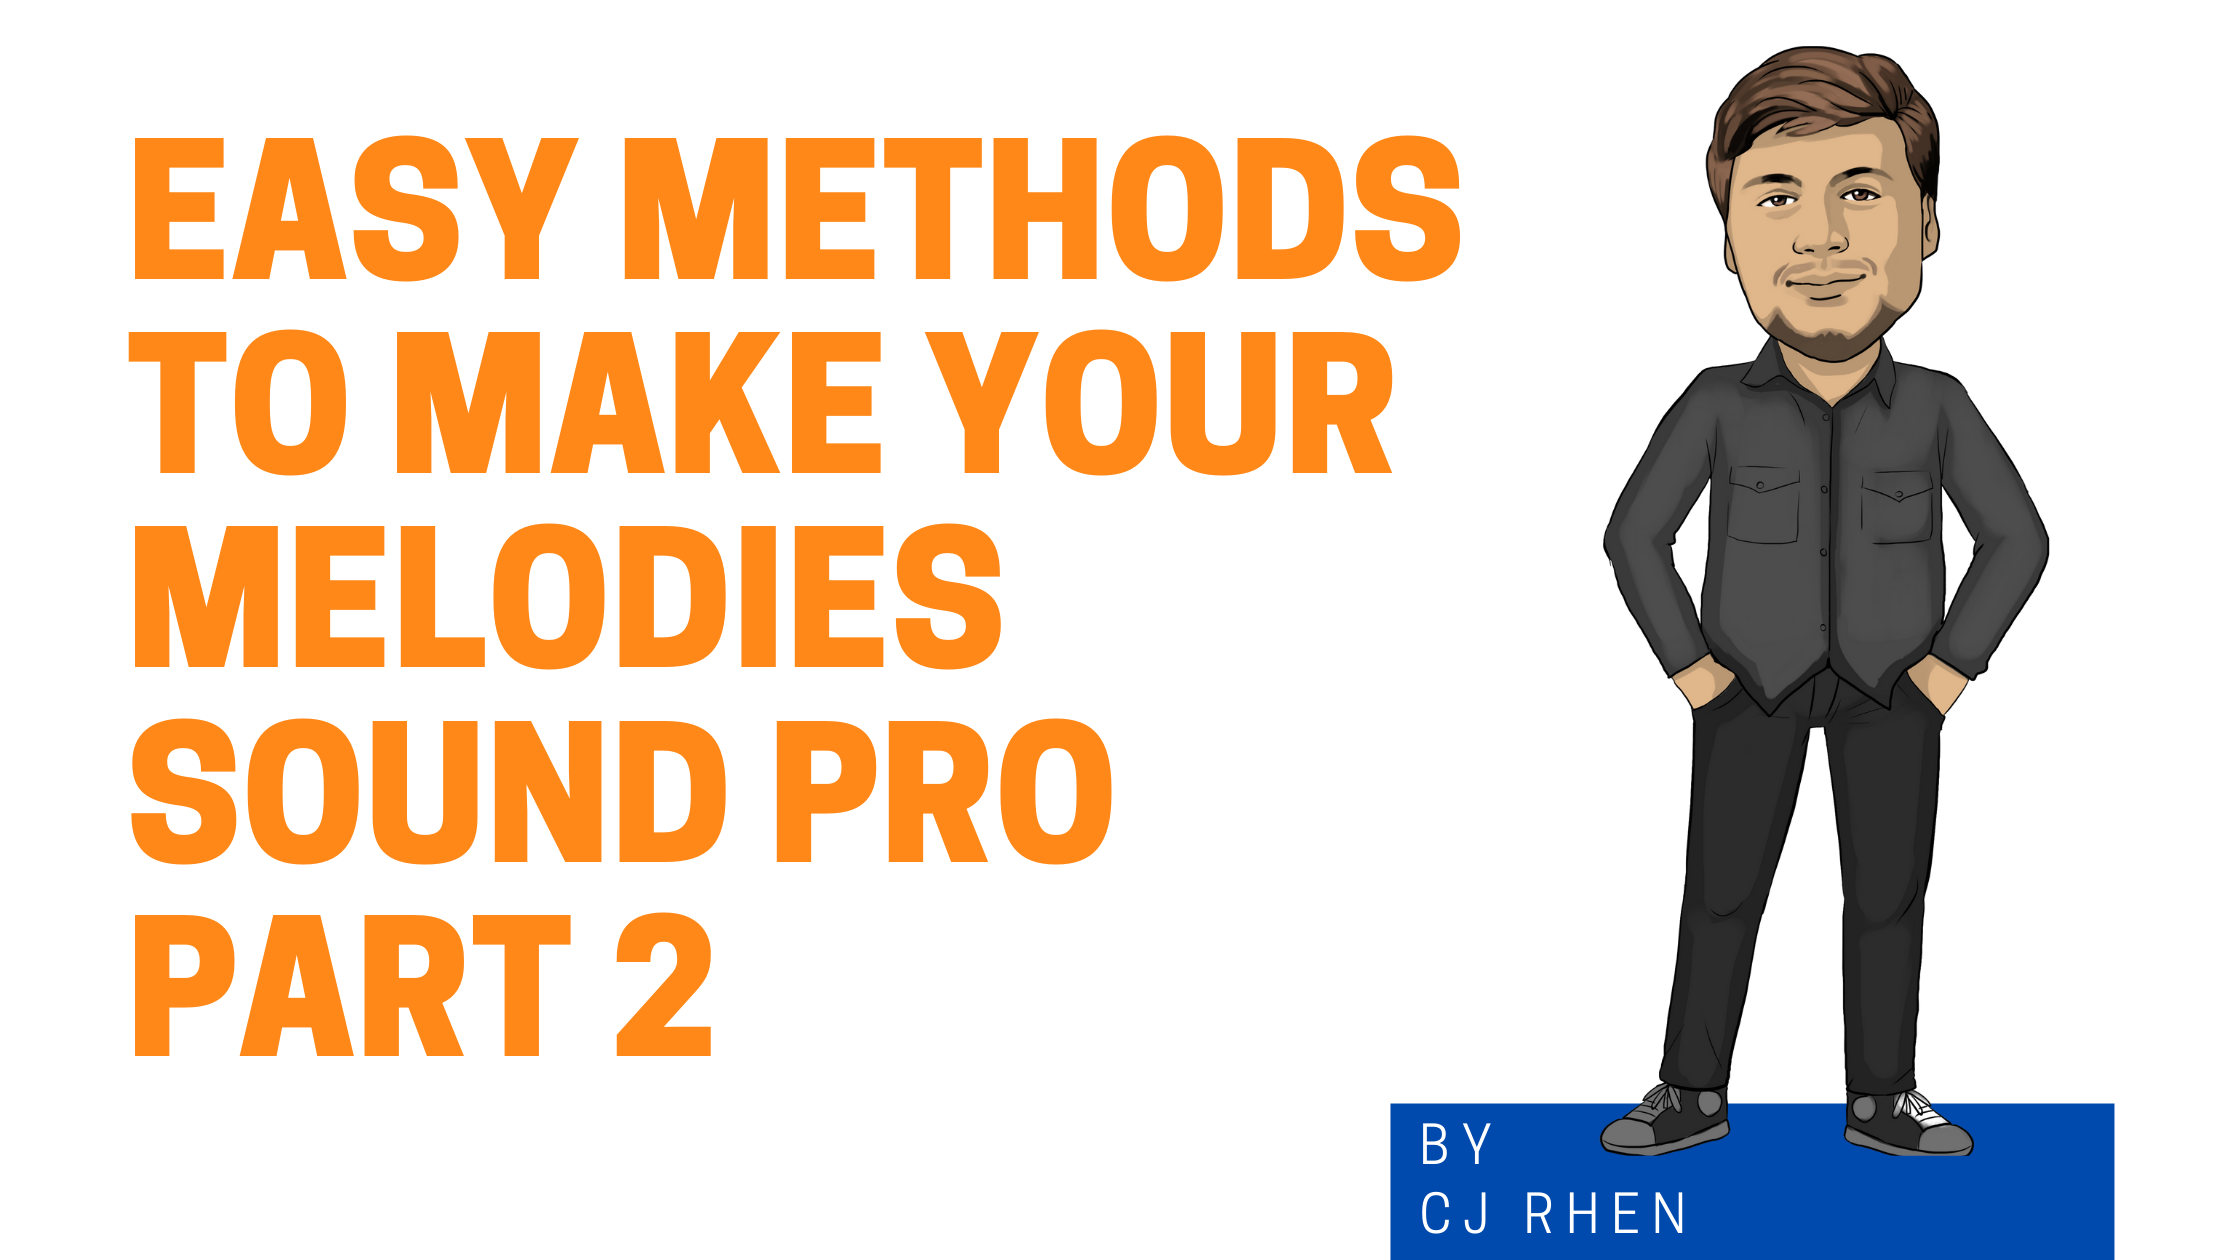 Easy Methods to Make Your Melodies Sound Pro 2 Graphic with Cartoon version of CJ